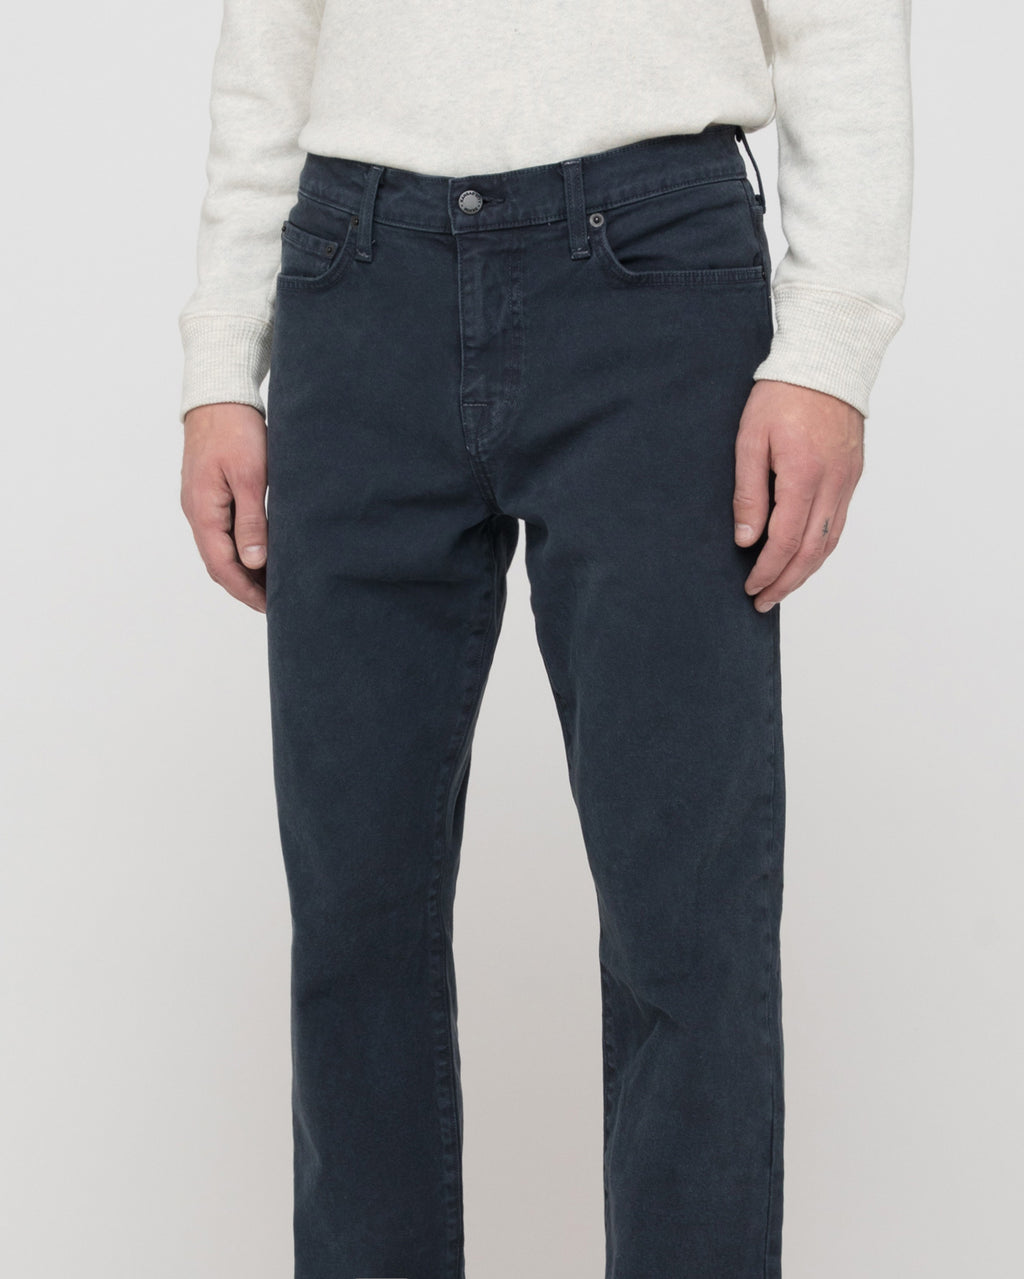 The Brennan Jean in Vintage Navy